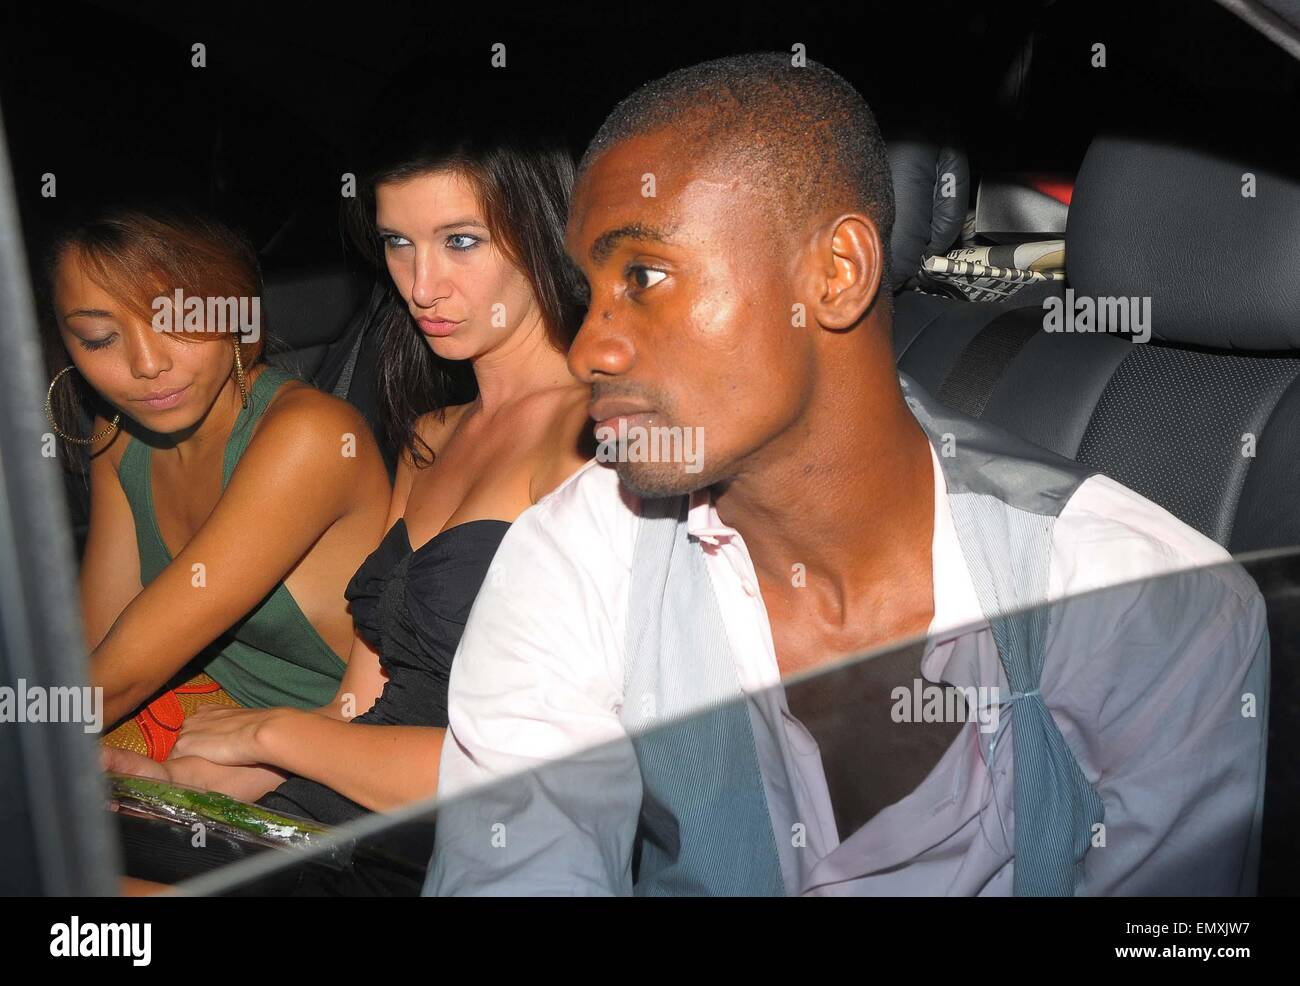 05.AUGUST.2009 - LONDON  CHELSEA FOOTBALLER SALOMON KALOU LEAVING WHISKY WIST CLUB, MAYFAIR AT 3.00AM LOOKING A - Stock Image